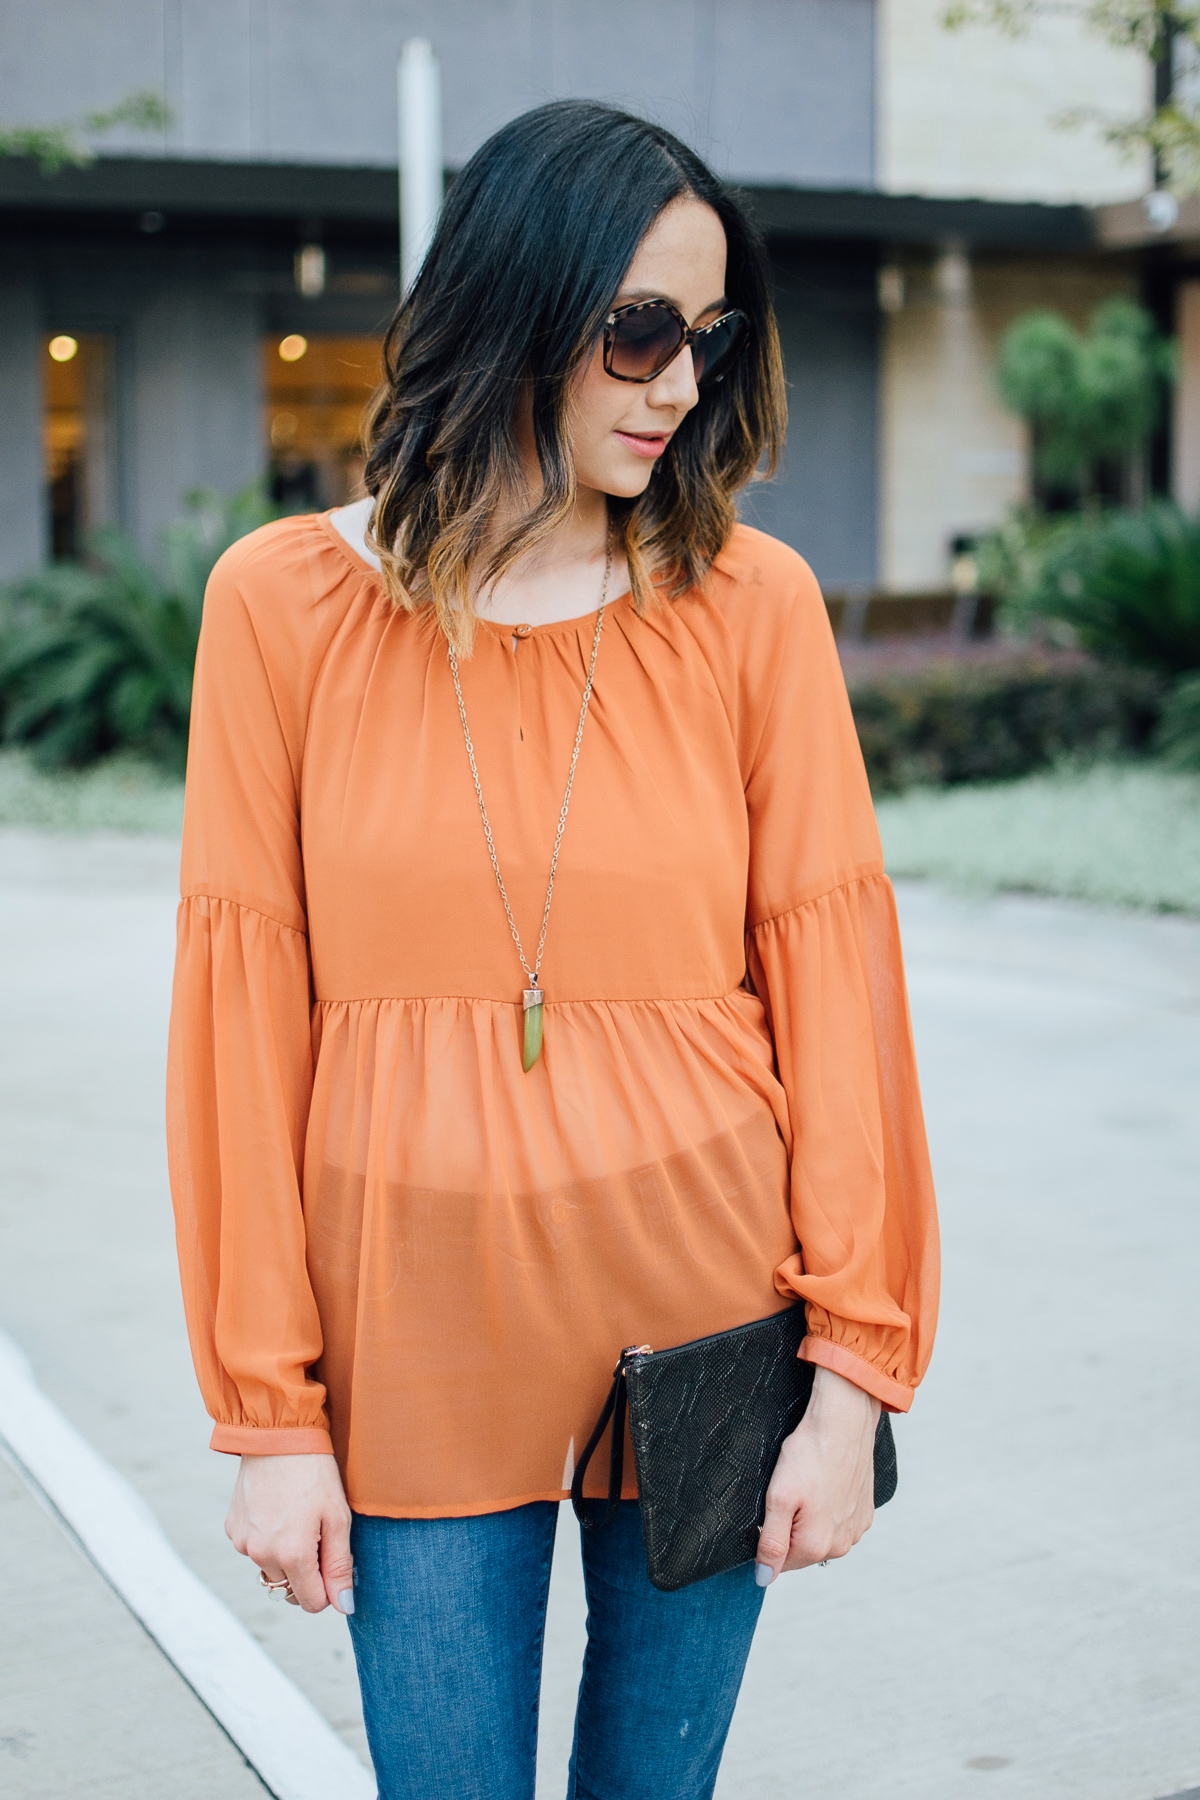 Lilly Beltran of Daily Craving fashion blog in a long sleeve orange top and black Elaine Turner clutch